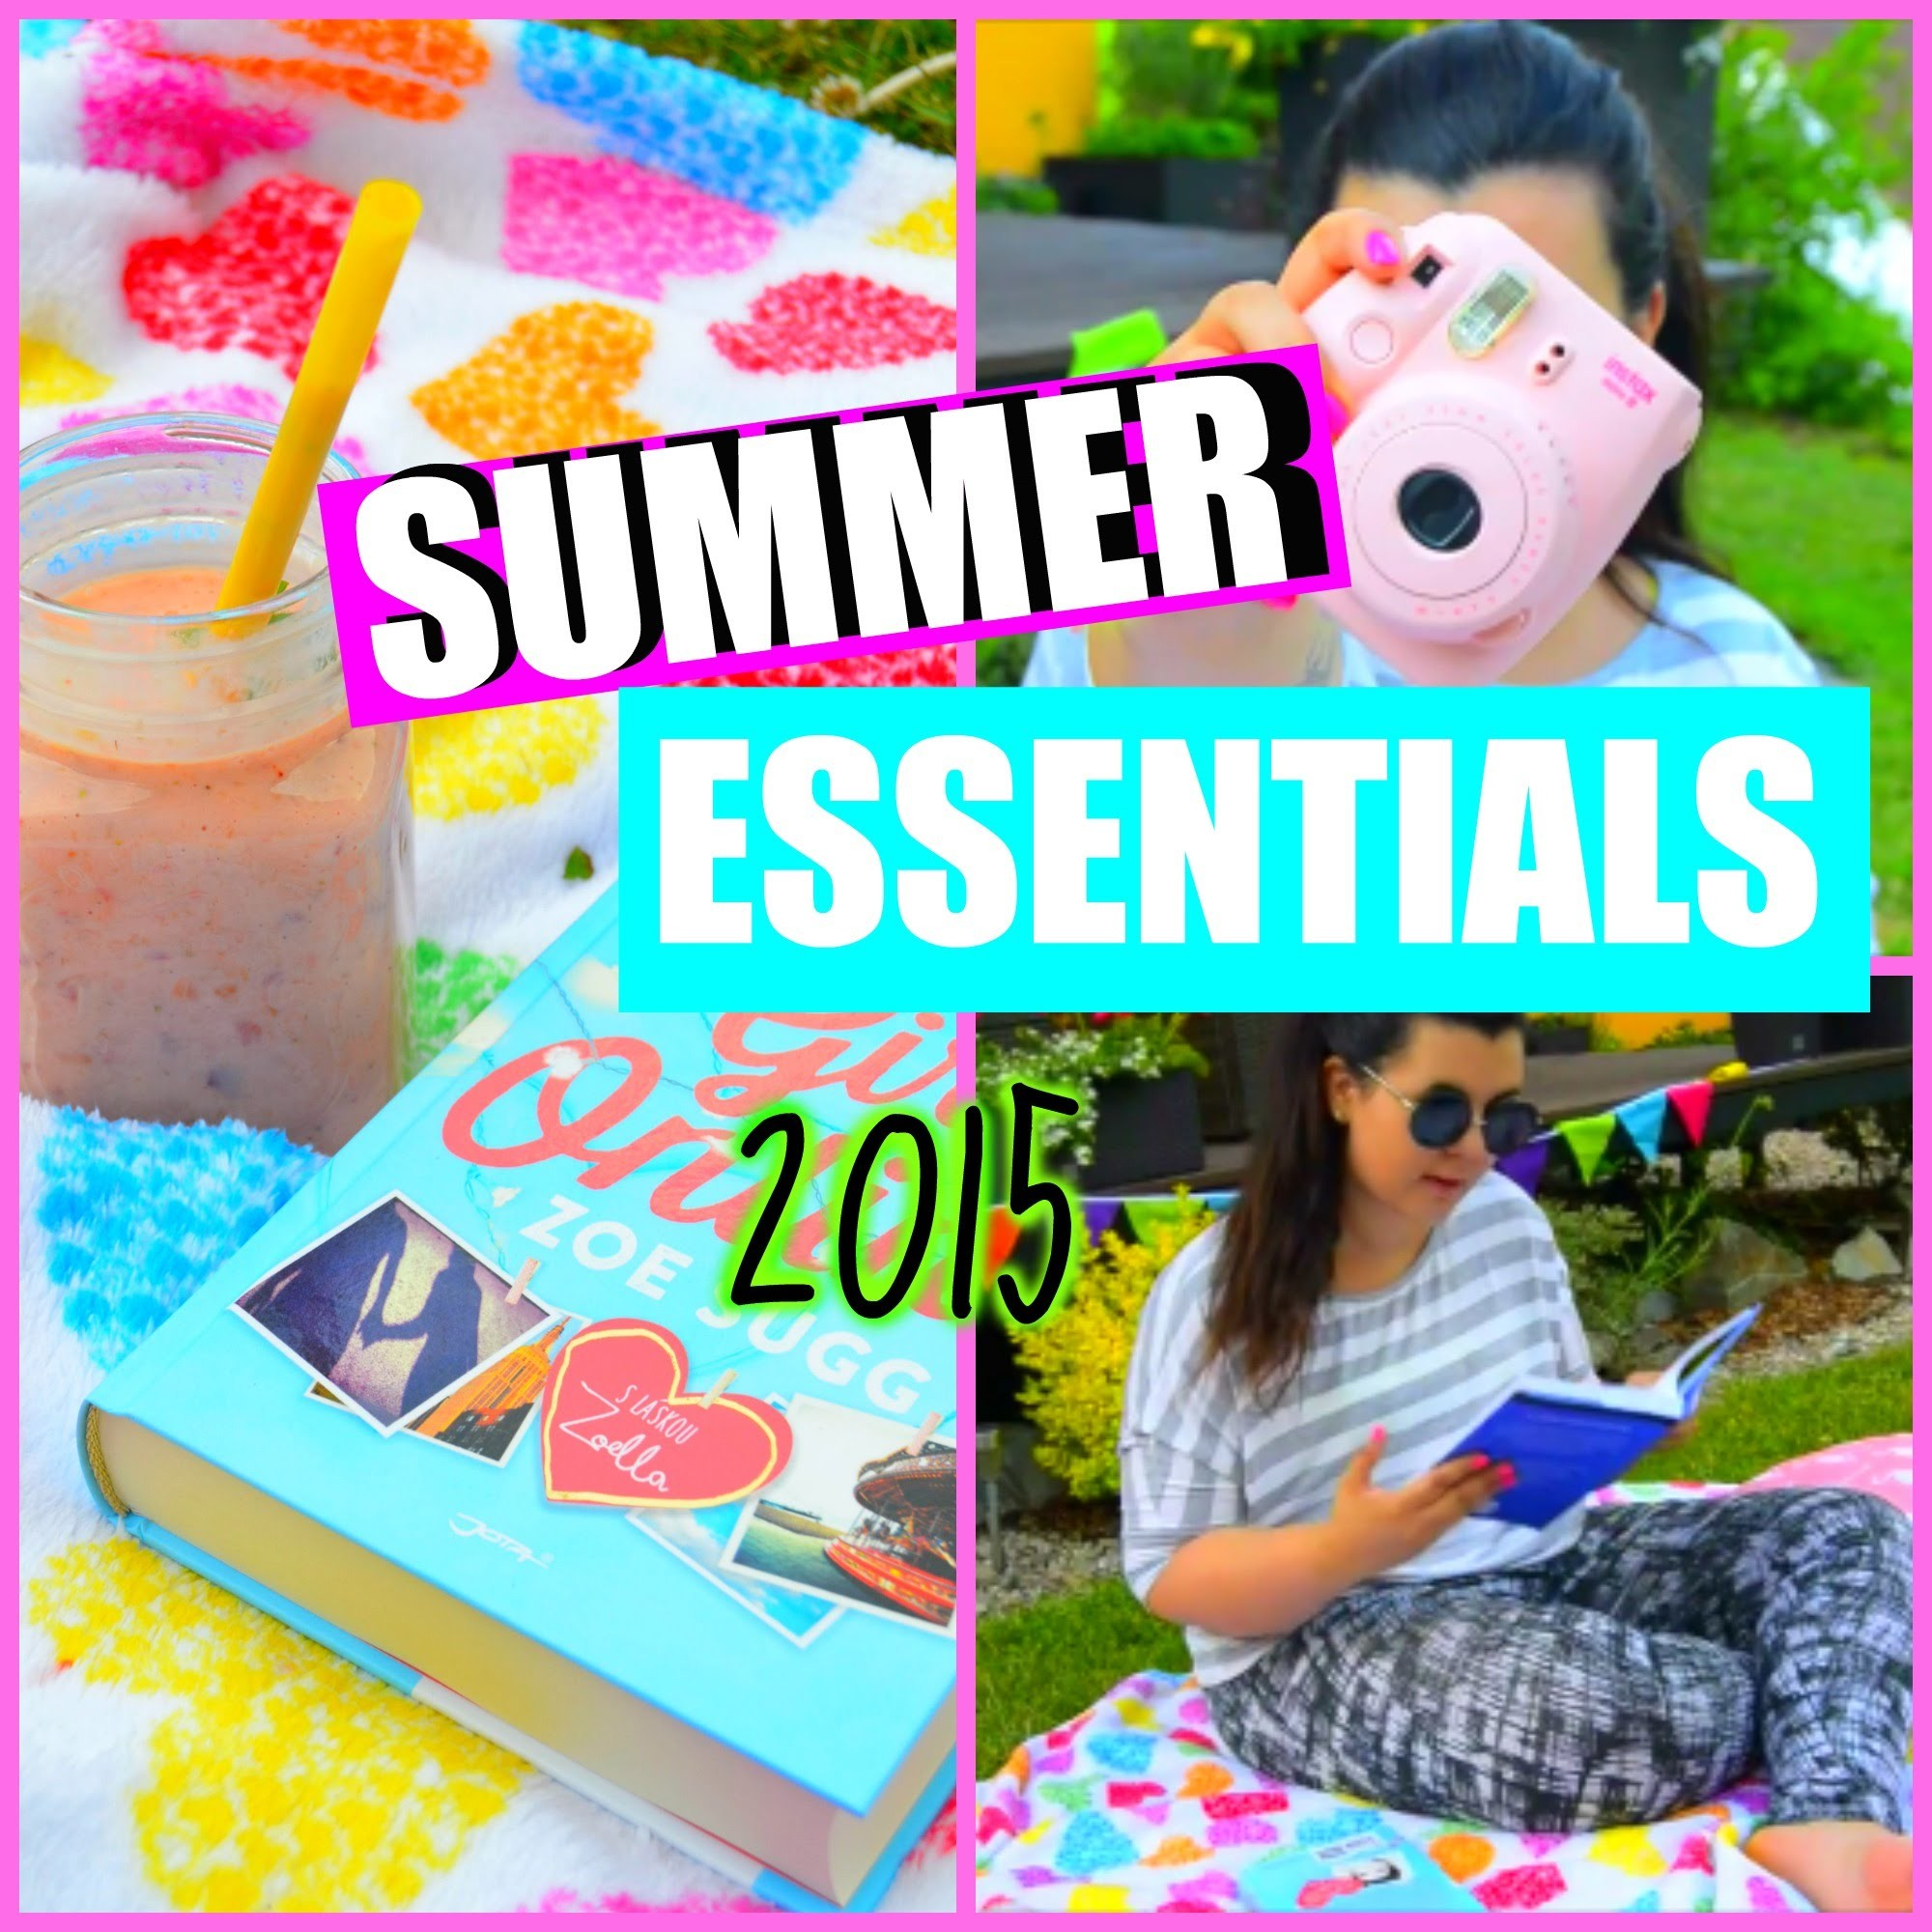 ♡ SUMMER ESSENTIALS - DIY, SNACK, PICNIC - Letní  inspirace ♡